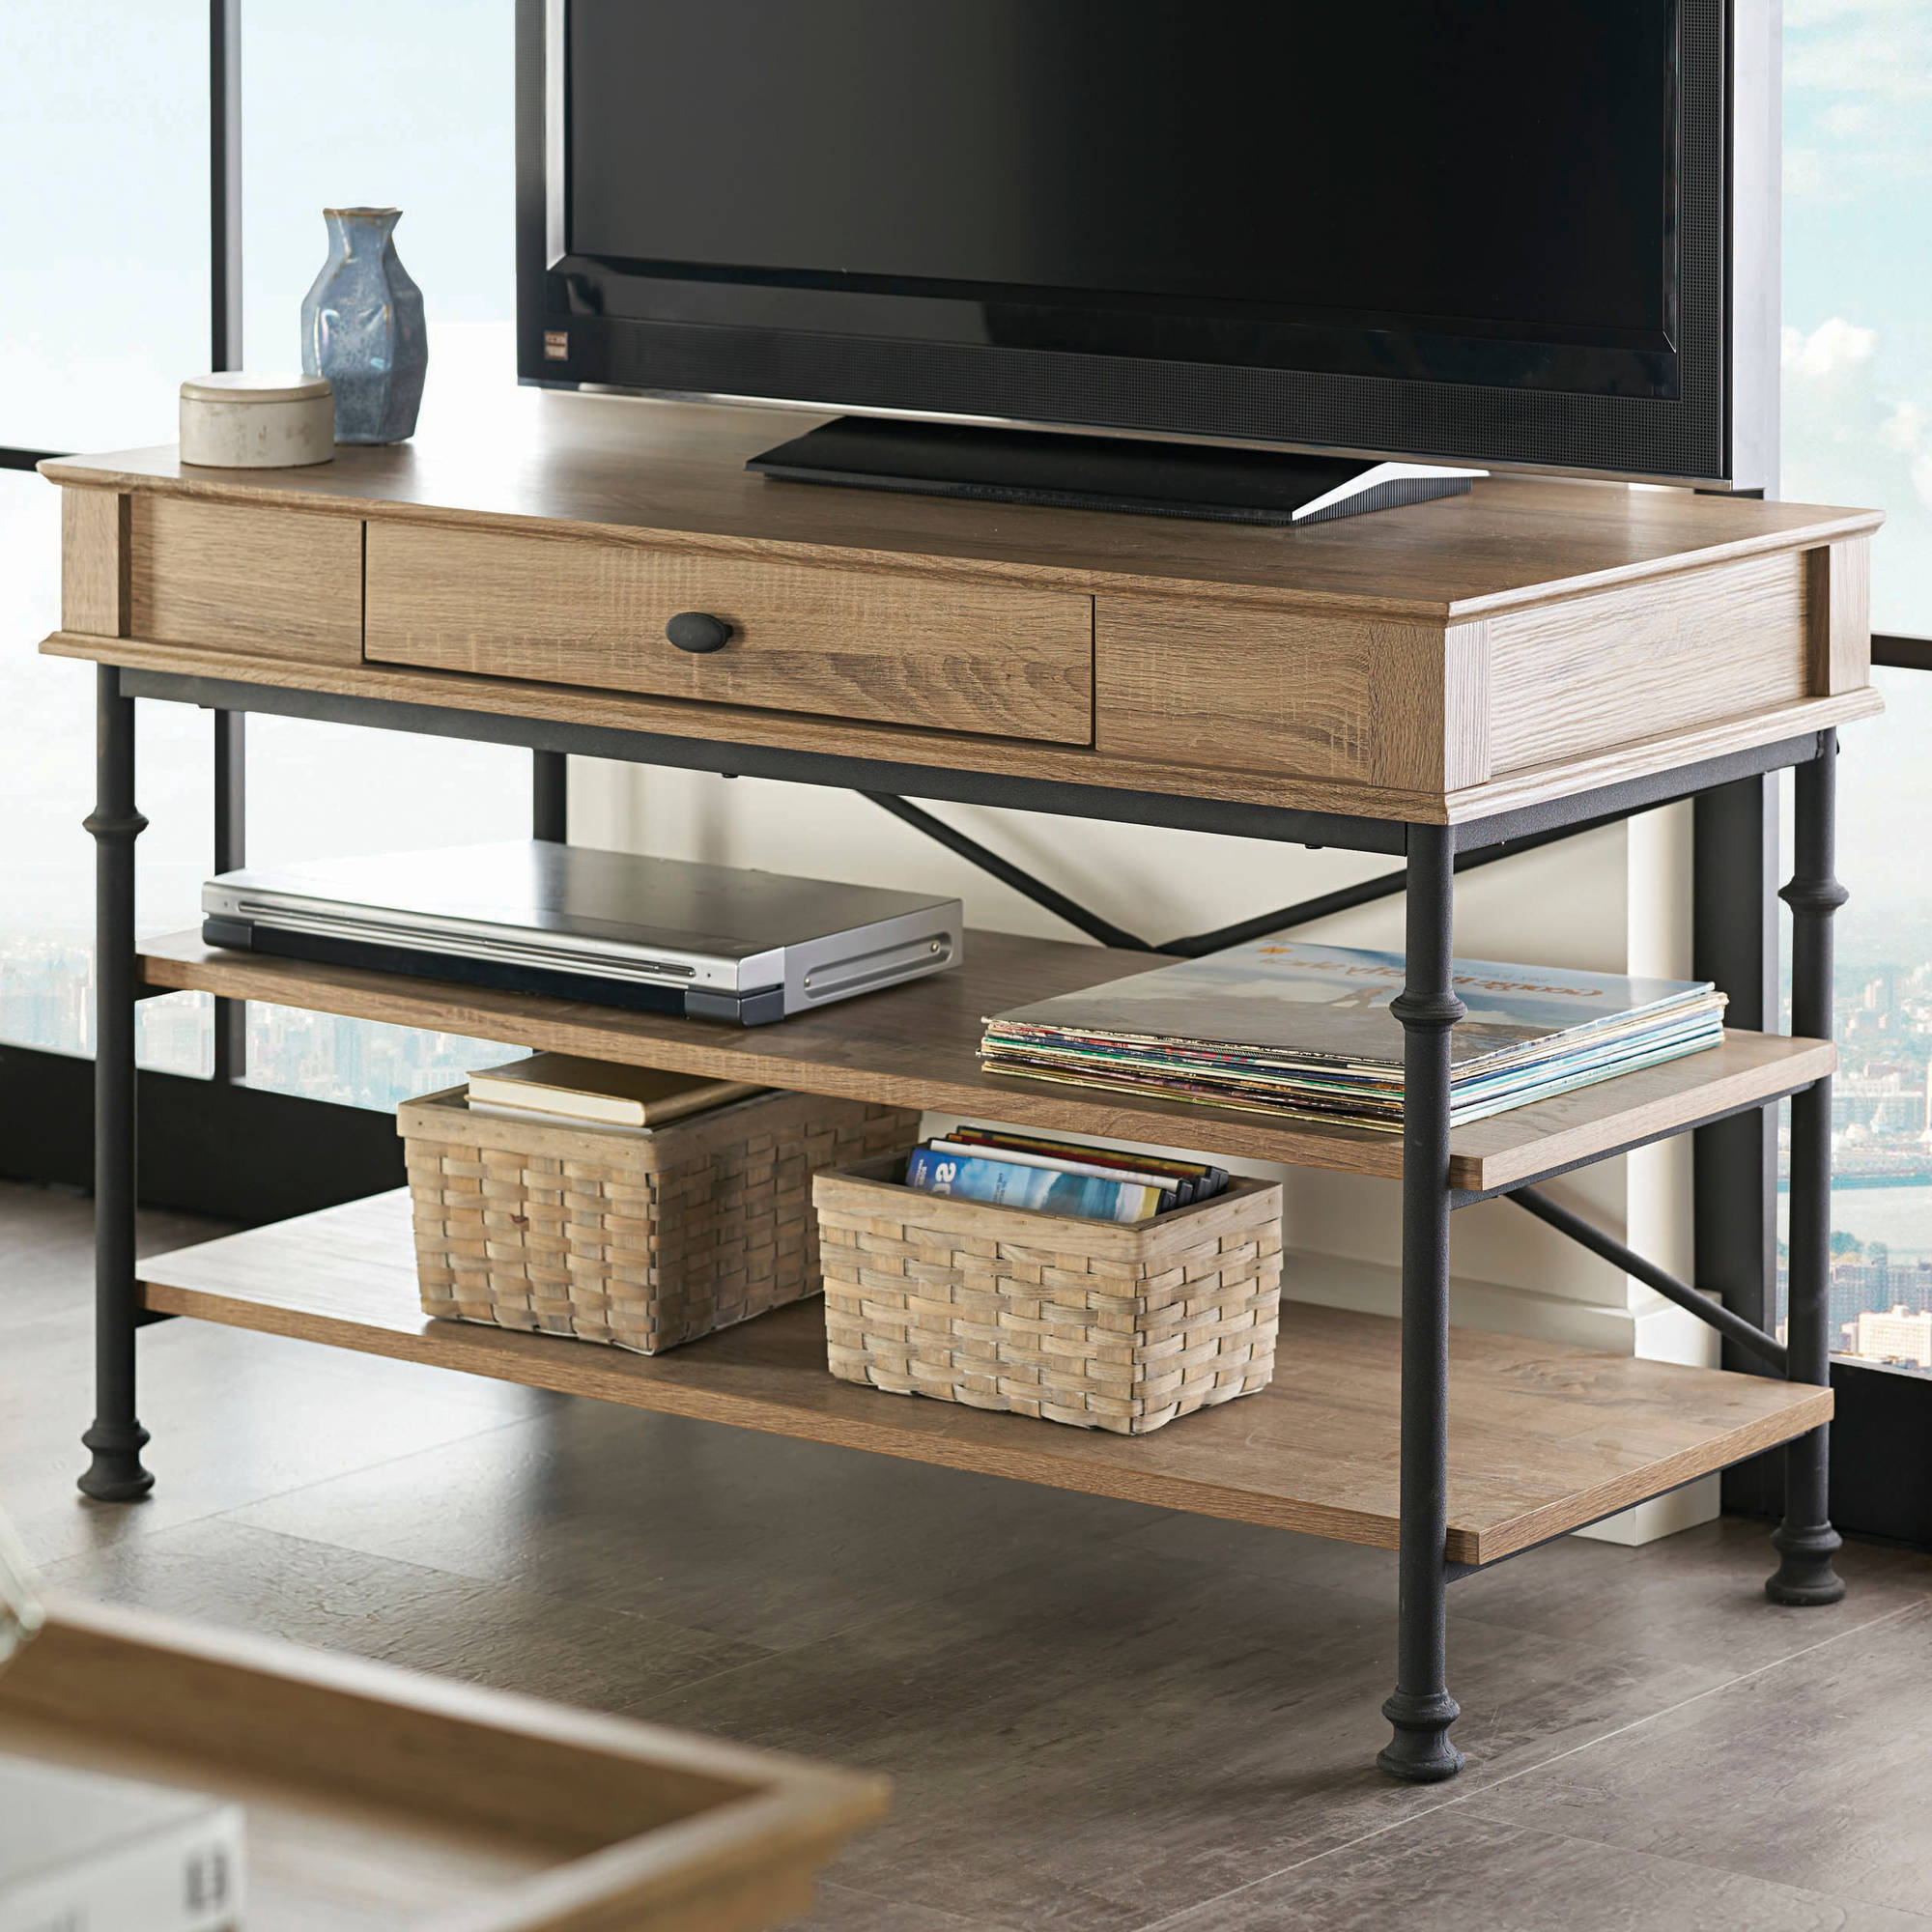 Country Tv Stand Ideas French Furniture Rustic Corner Better Homes Intended For Fashionable Country Tv Stands (View 4 of 20)